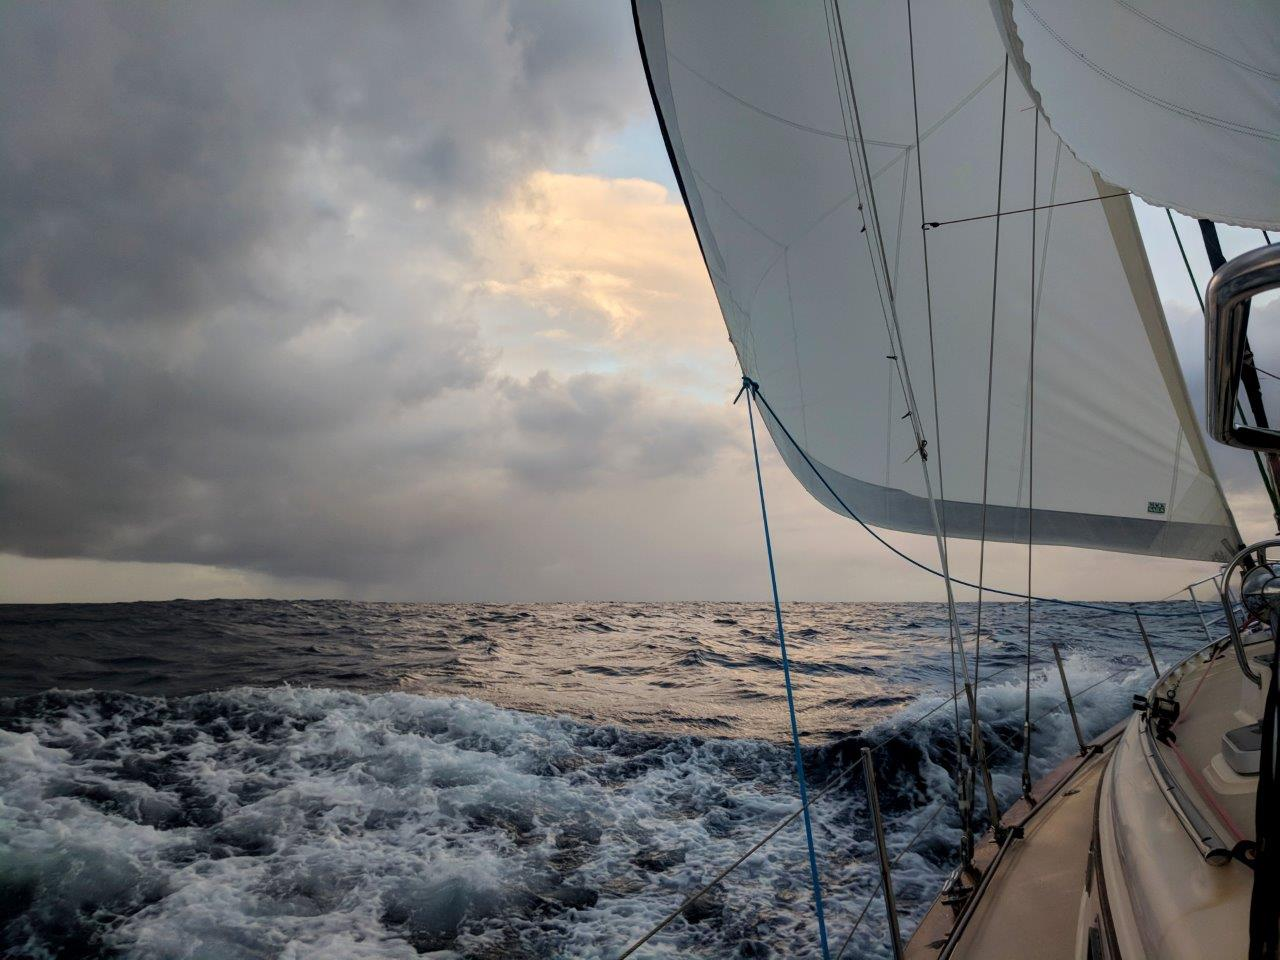 Not all sailing days are sunny